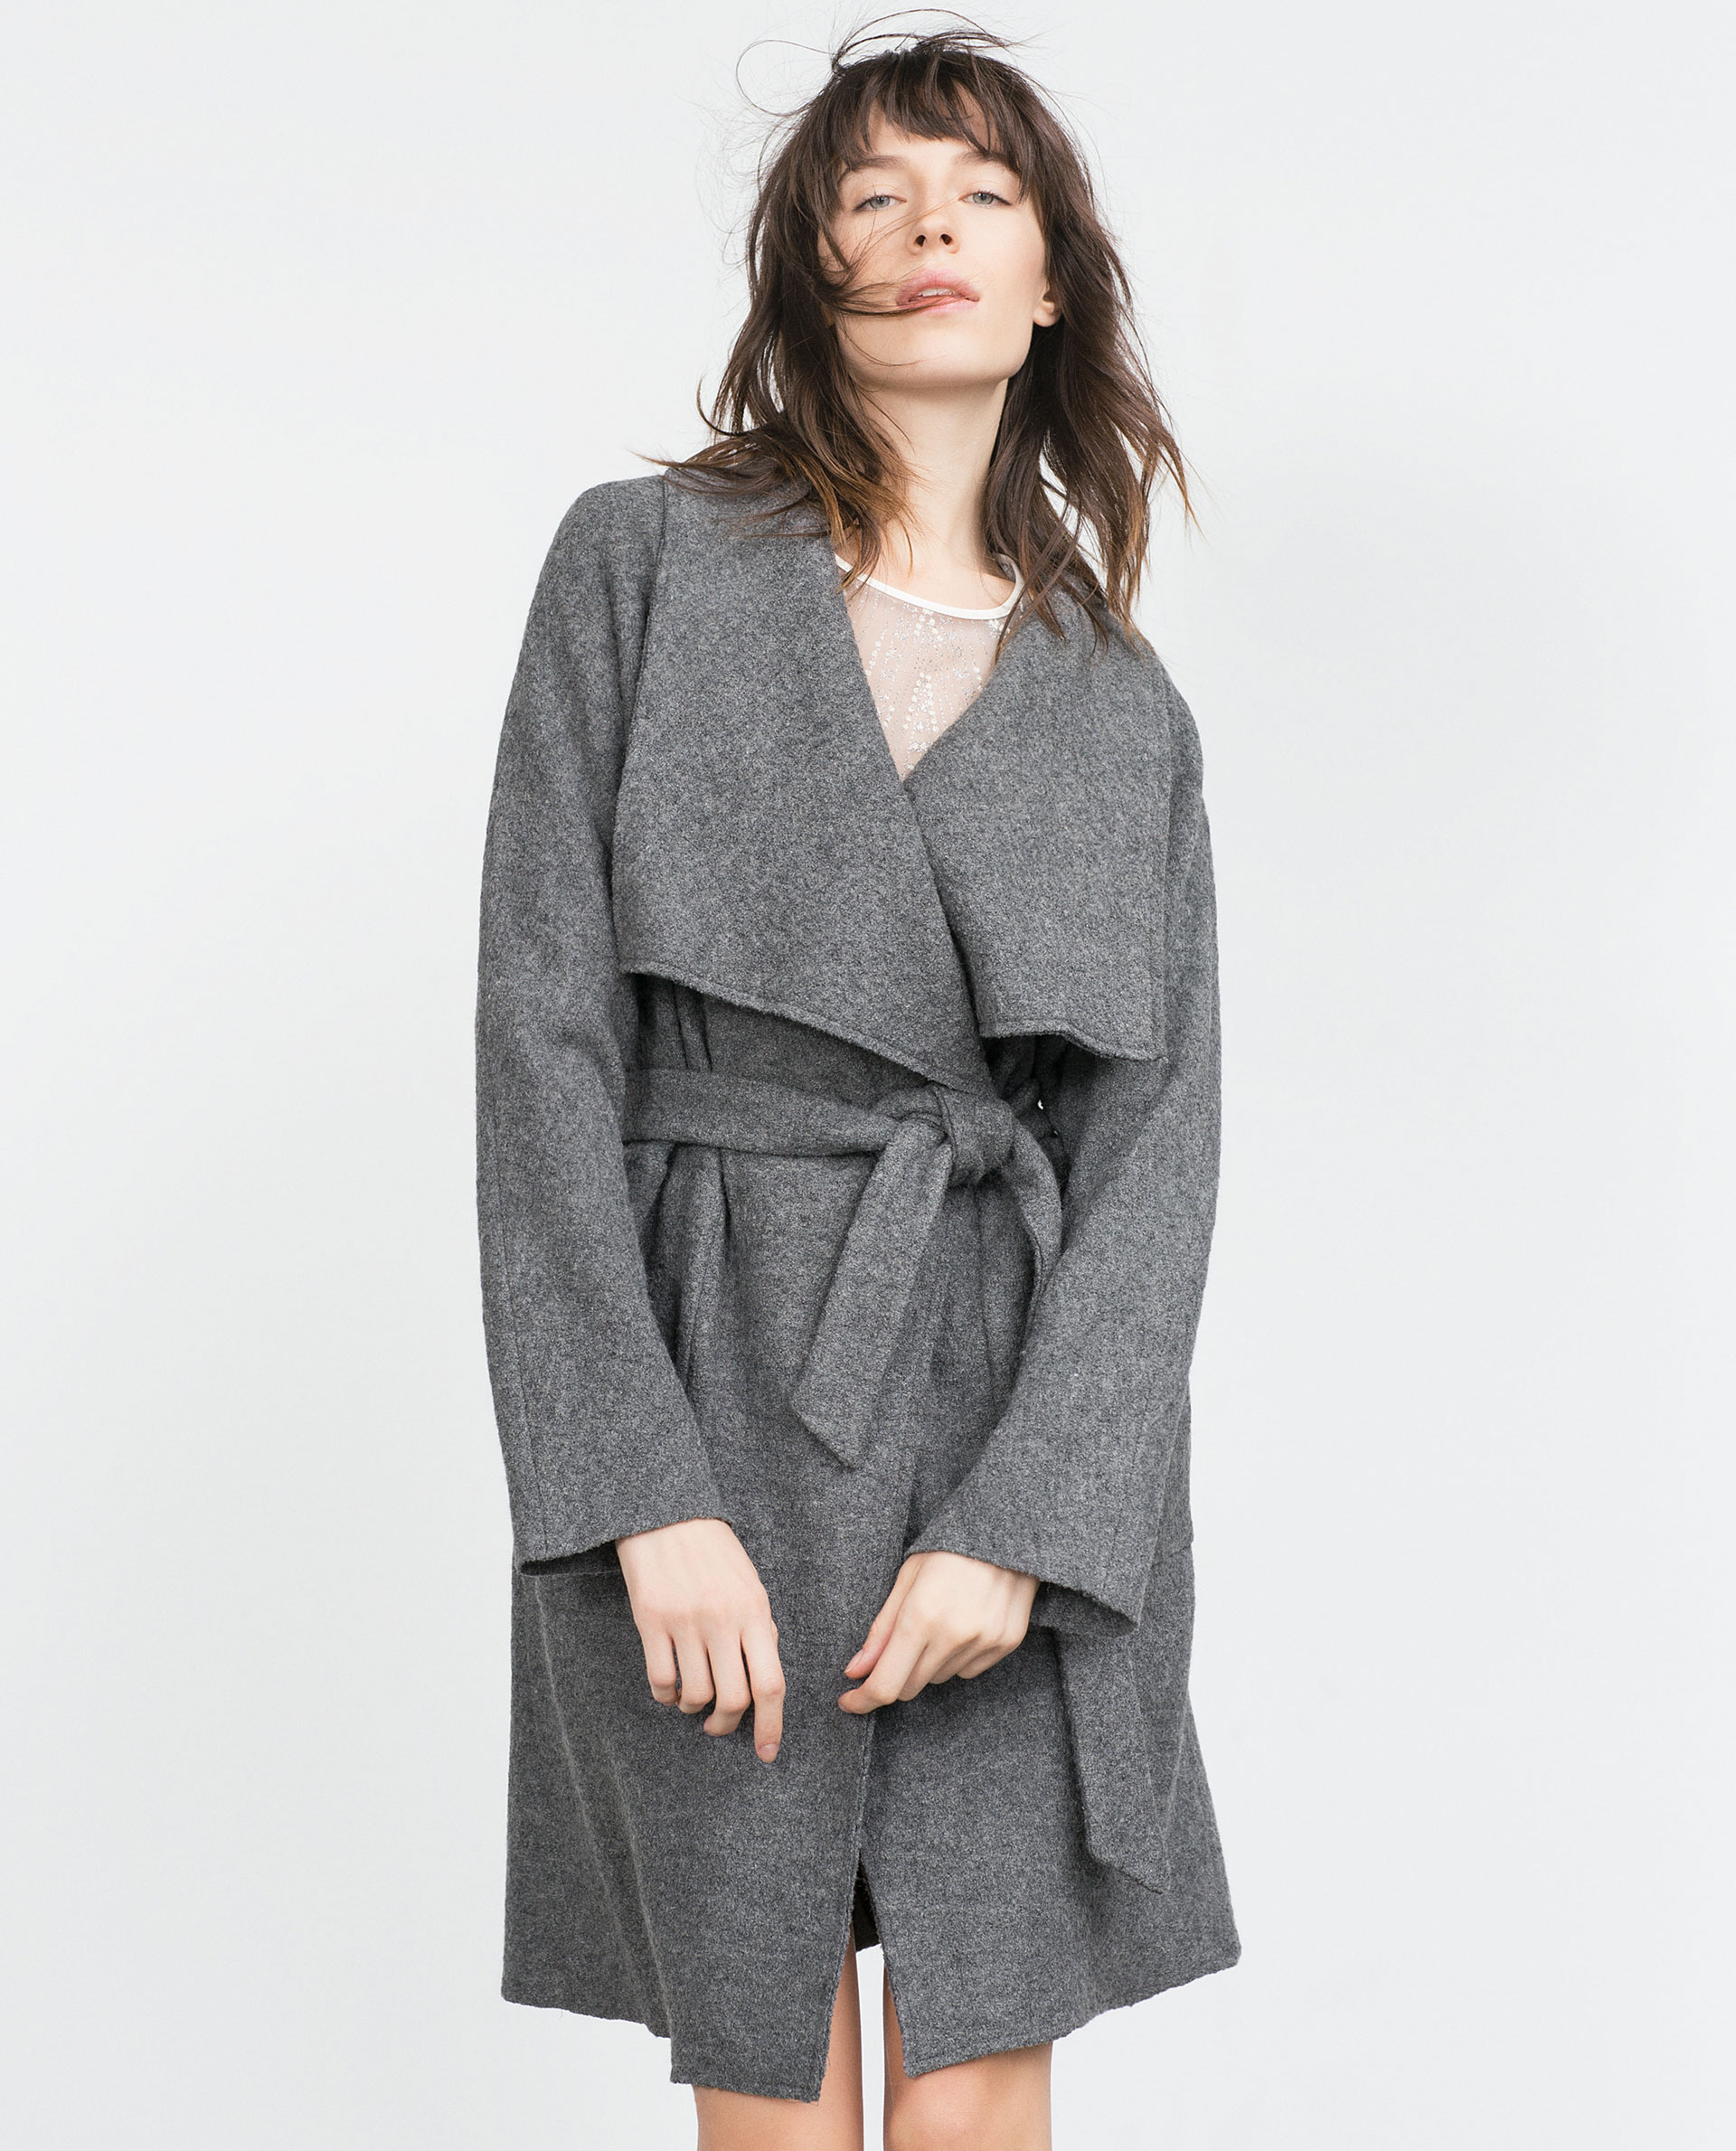 Find great deals on eBay for zara coat women. Shop with confidence.